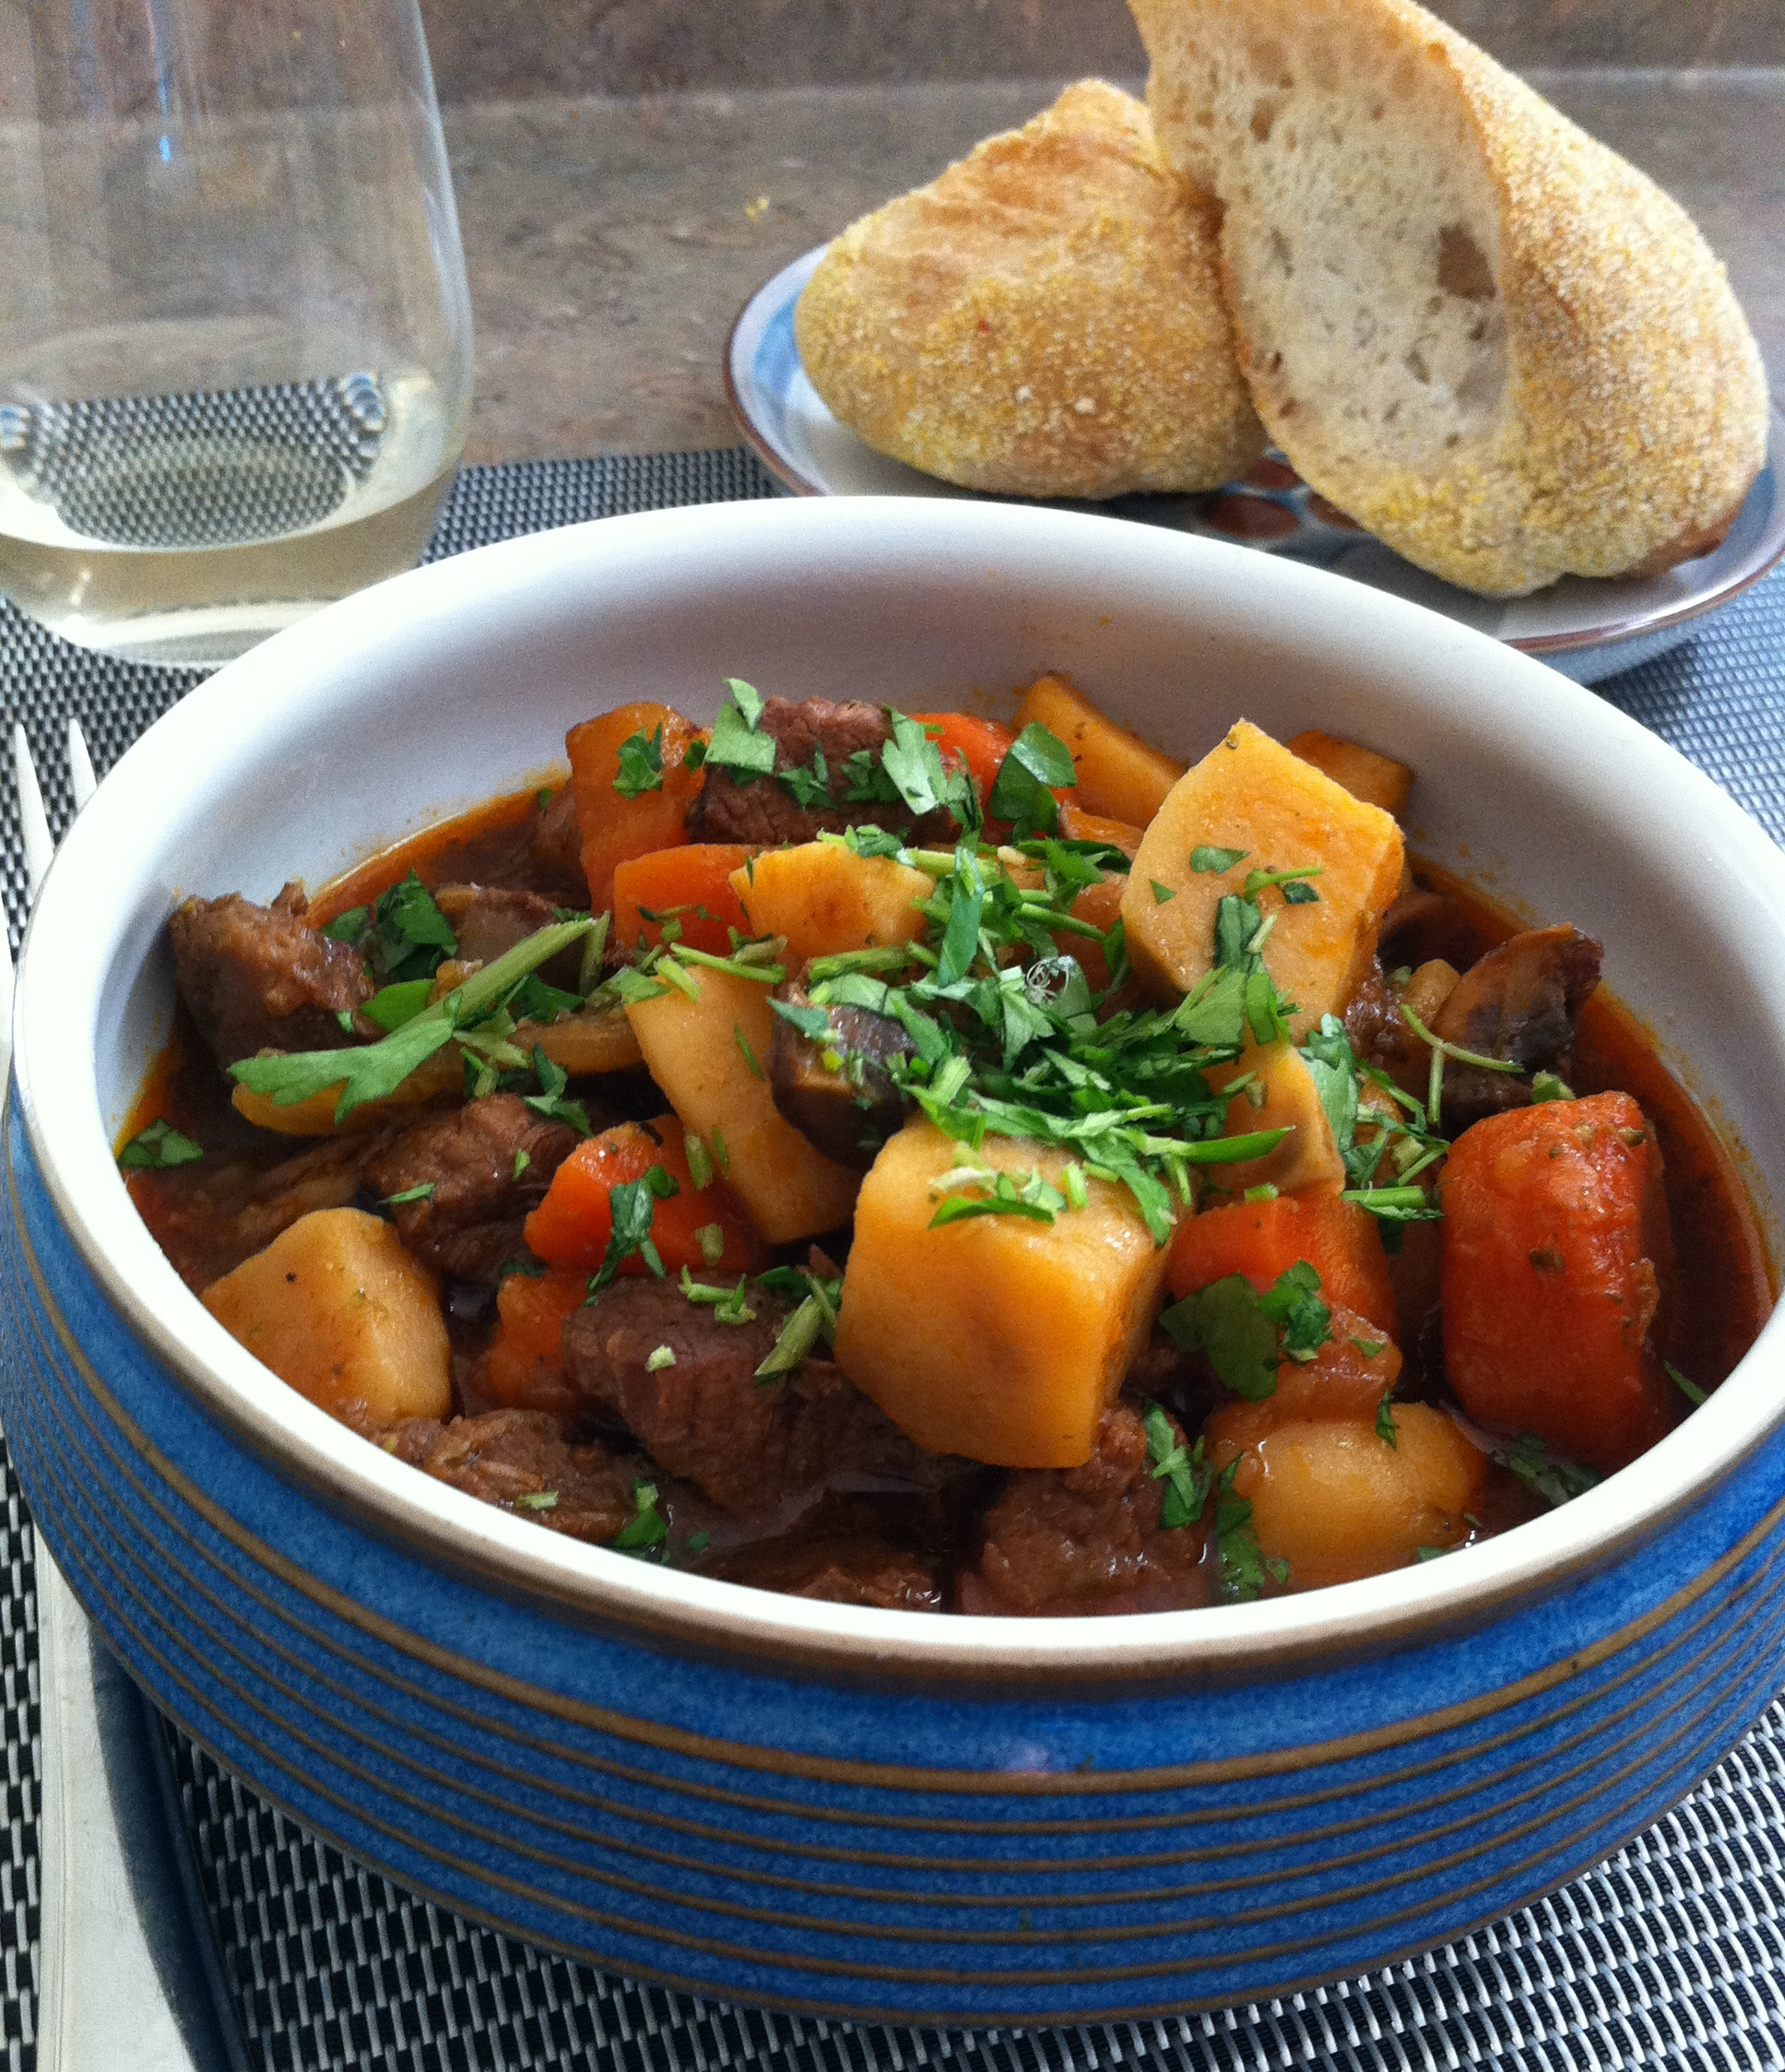 Irish Stew serving